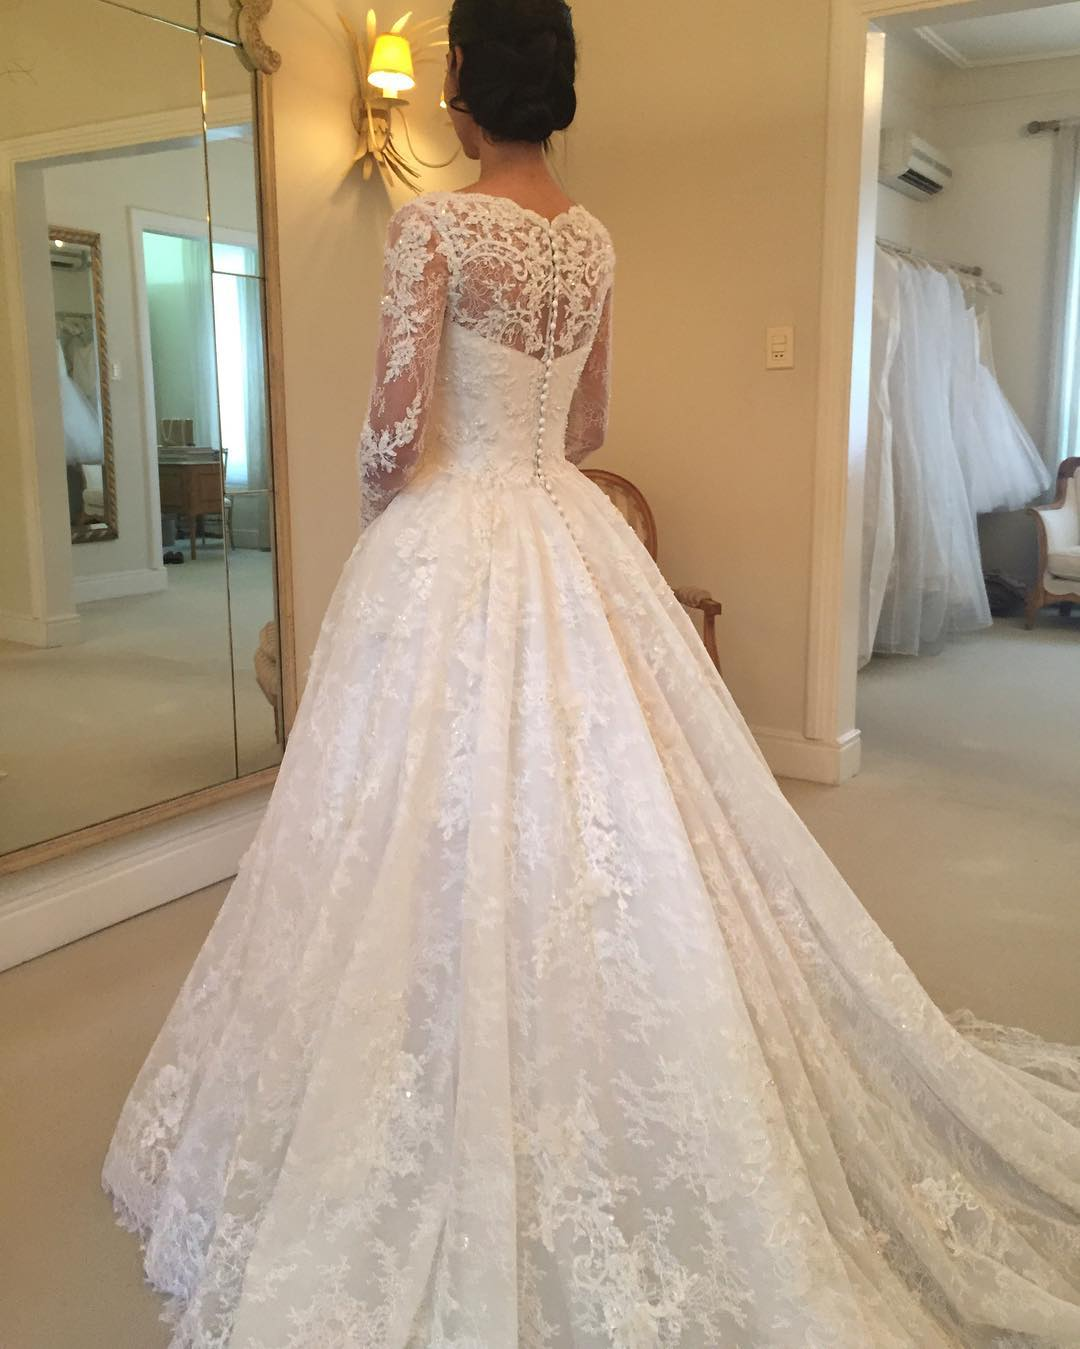 Lace Wedding Dress Long Sleeve Wedding Dress Elegant Wedding Dress Ivory Wedding Dress Simple Wedding Dress Cheap Wedding Dress Wedding Dresses